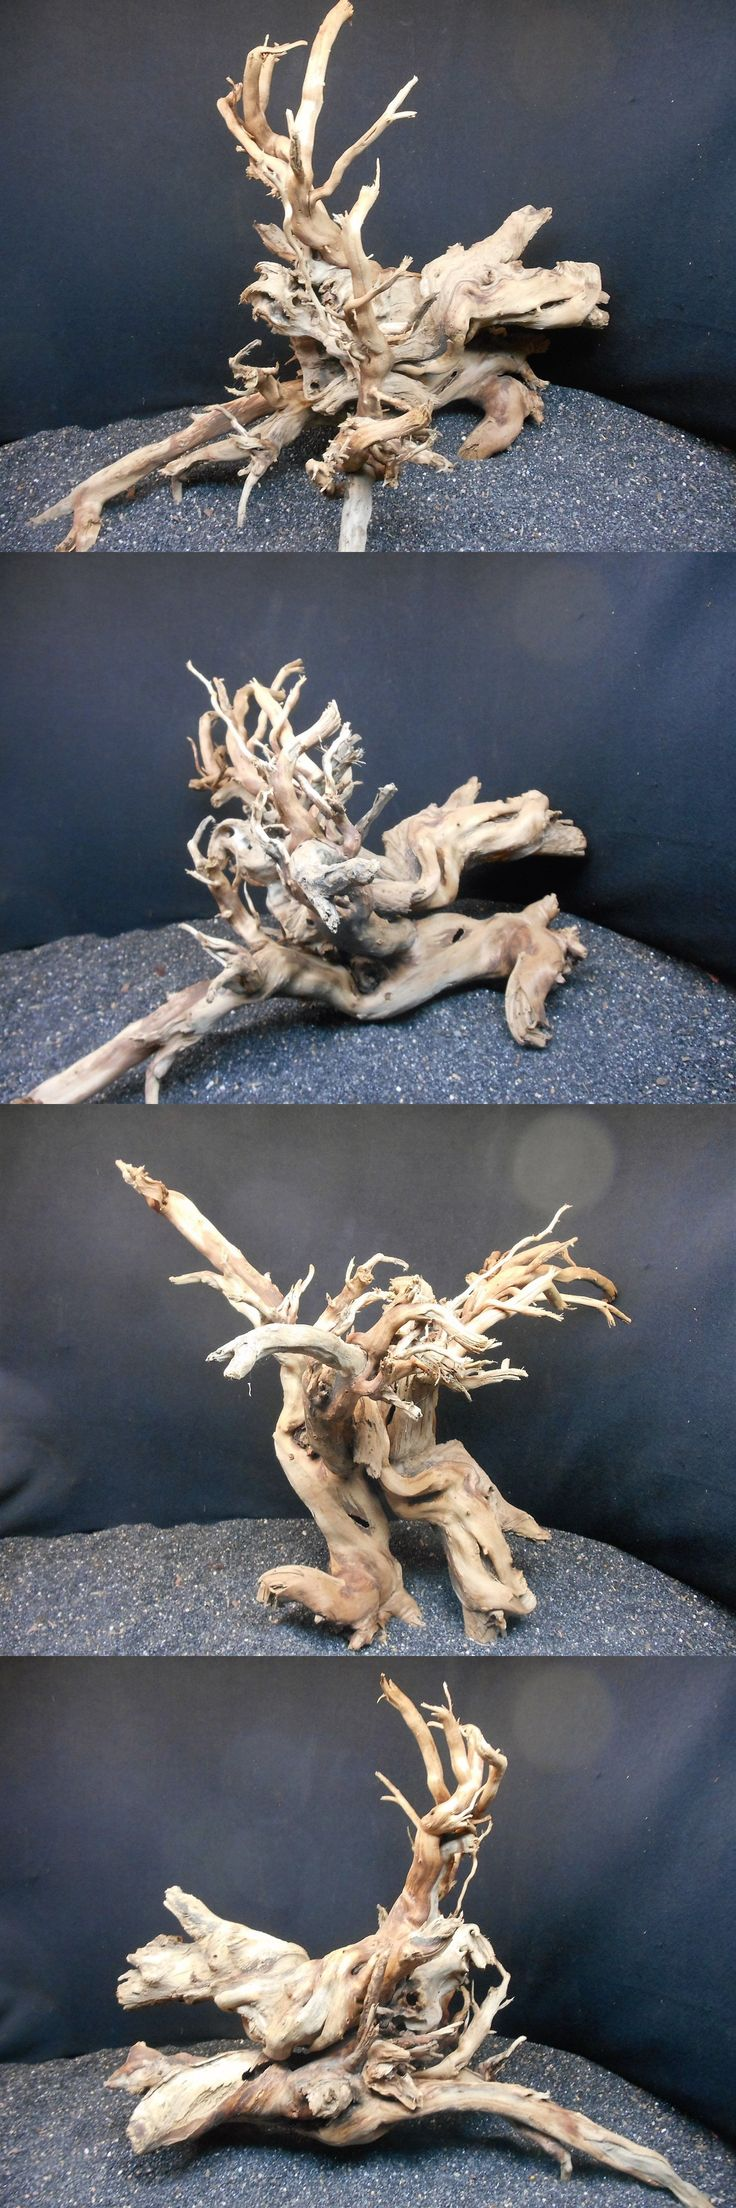 Decorations 66789: Mangrove Driftwood Fish Aquariums Reptiles Bonsai Plant Display Pond Taxidermy -> BUY IT NOW ONLY: $130.53 on eBay!